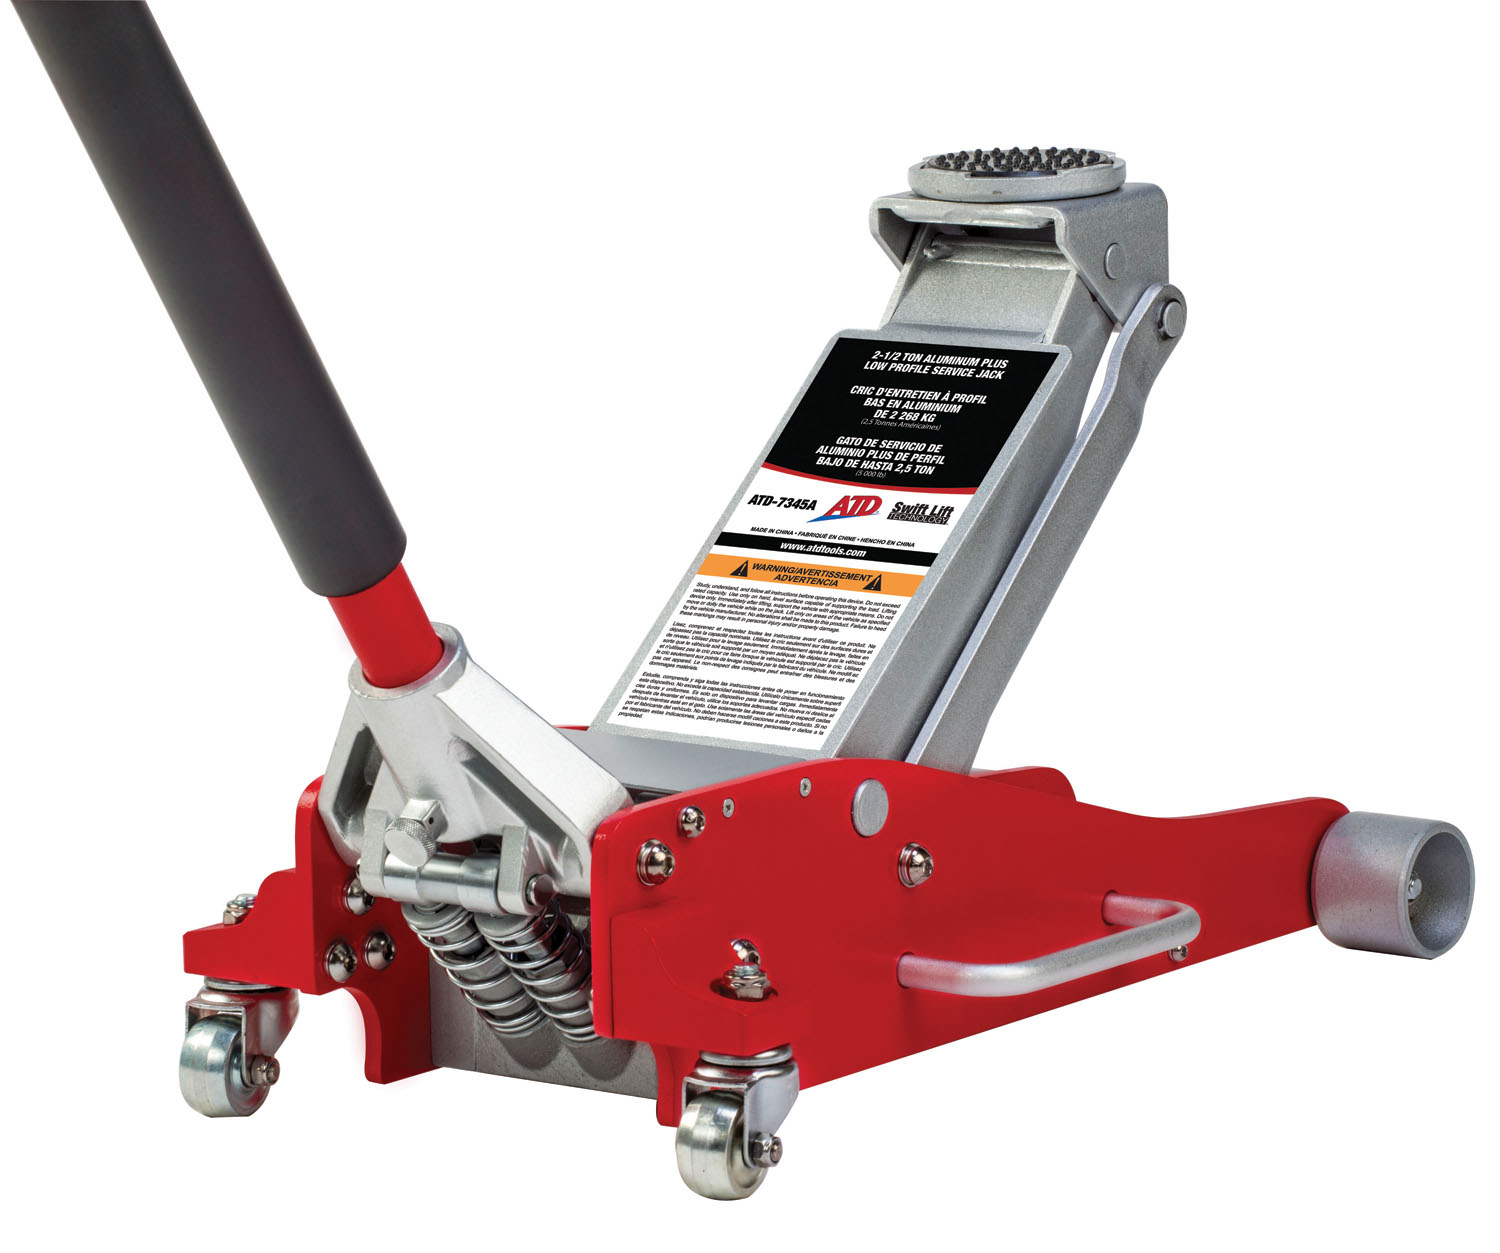 ATD Tools 2-1/2 Ton Aluminum Plus Low Profile Service Jack